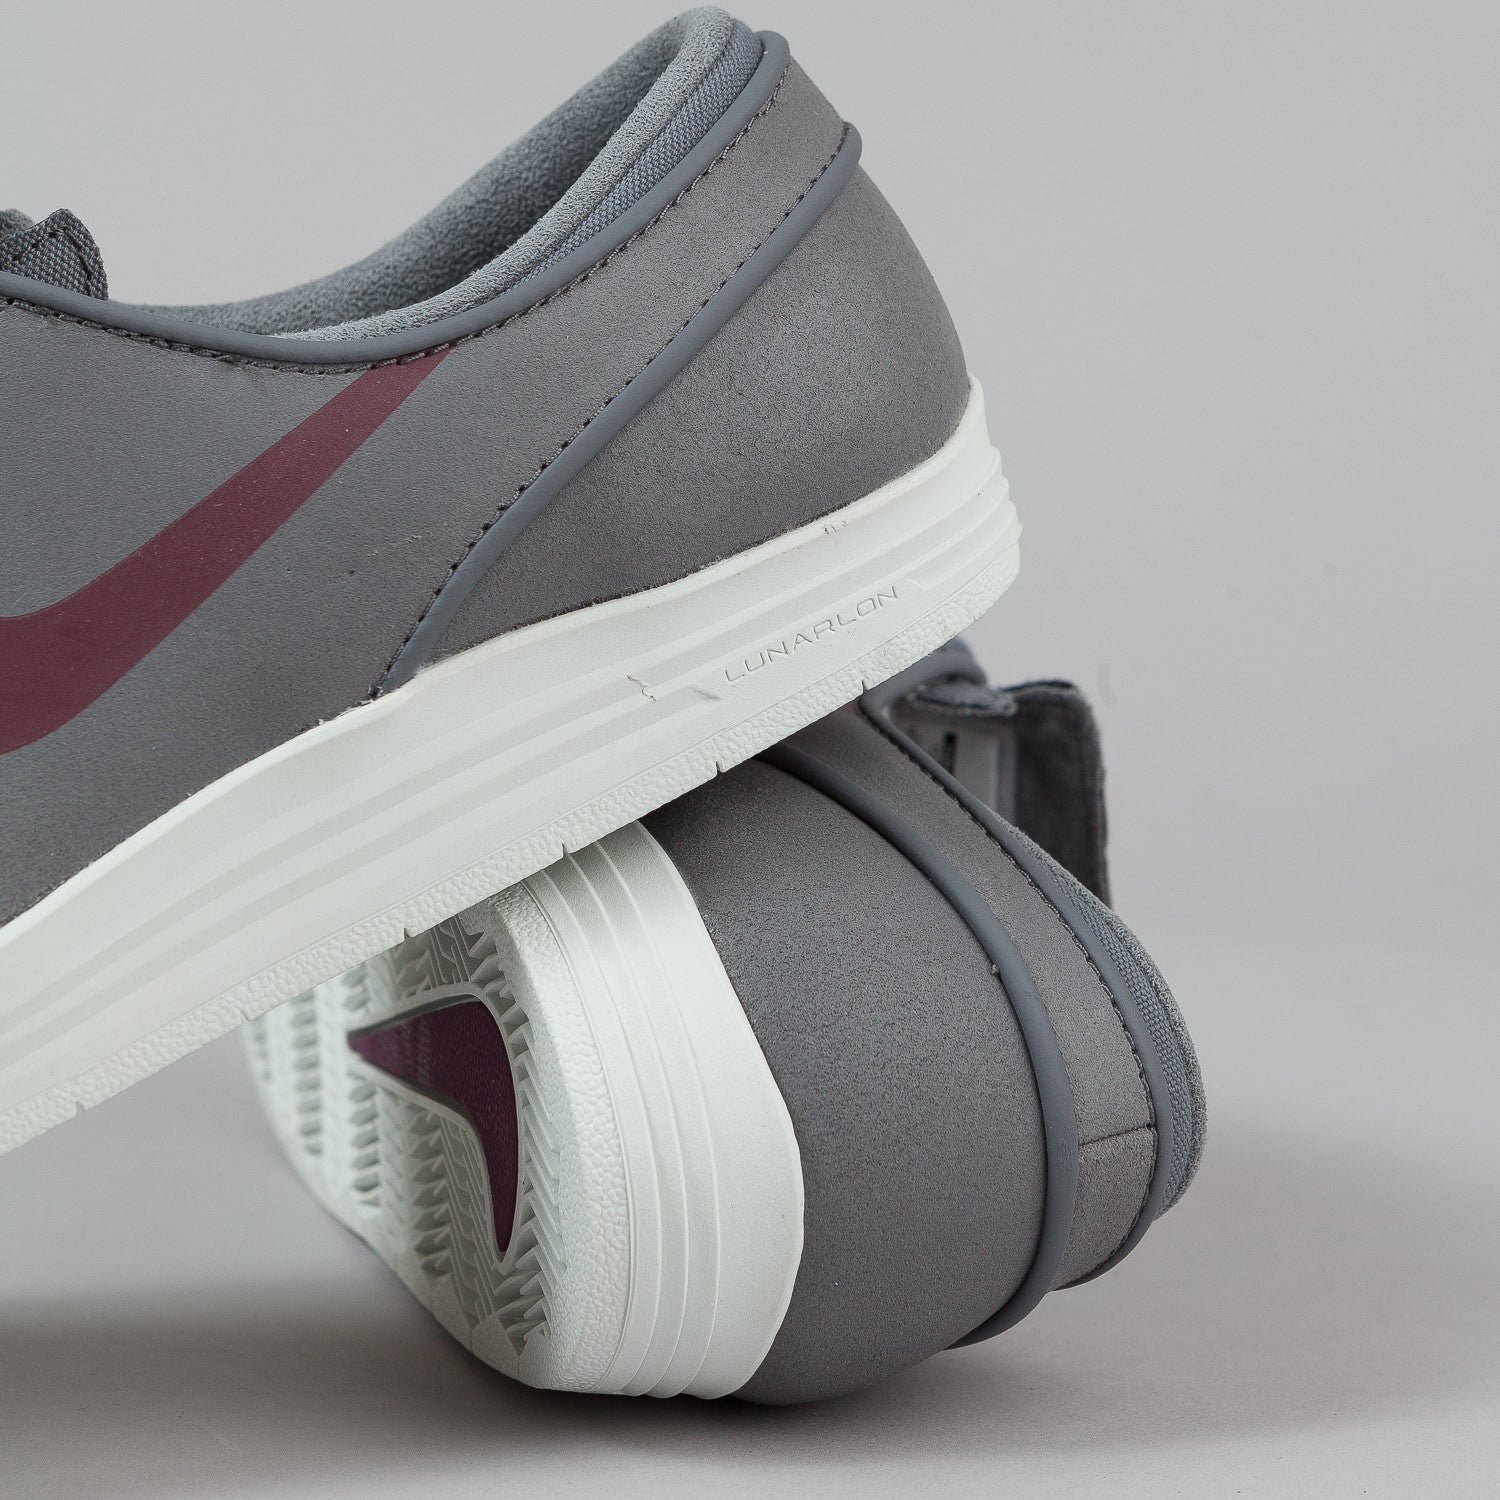 Nike SB Lunar Stefan Janoski Shoes - Cool Grey / Villain Red / Anthracite